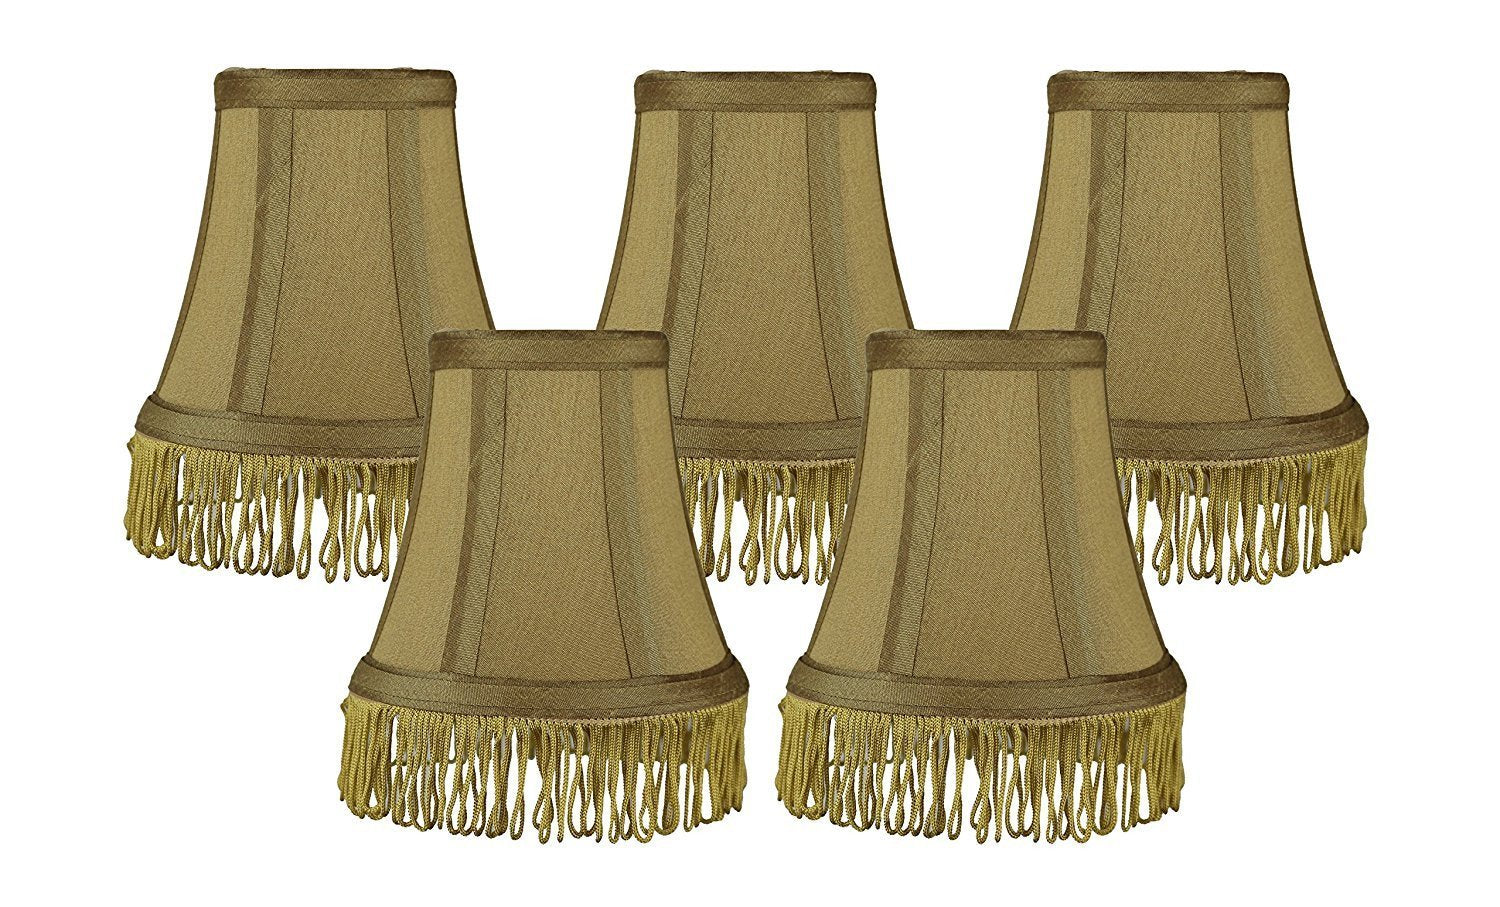 Silk bell 5 inch chandelier lamp shade with fringe 6 colors urbanest silk bell 5 inch chandelier lamp shade with fringe 6 colors aloadofball